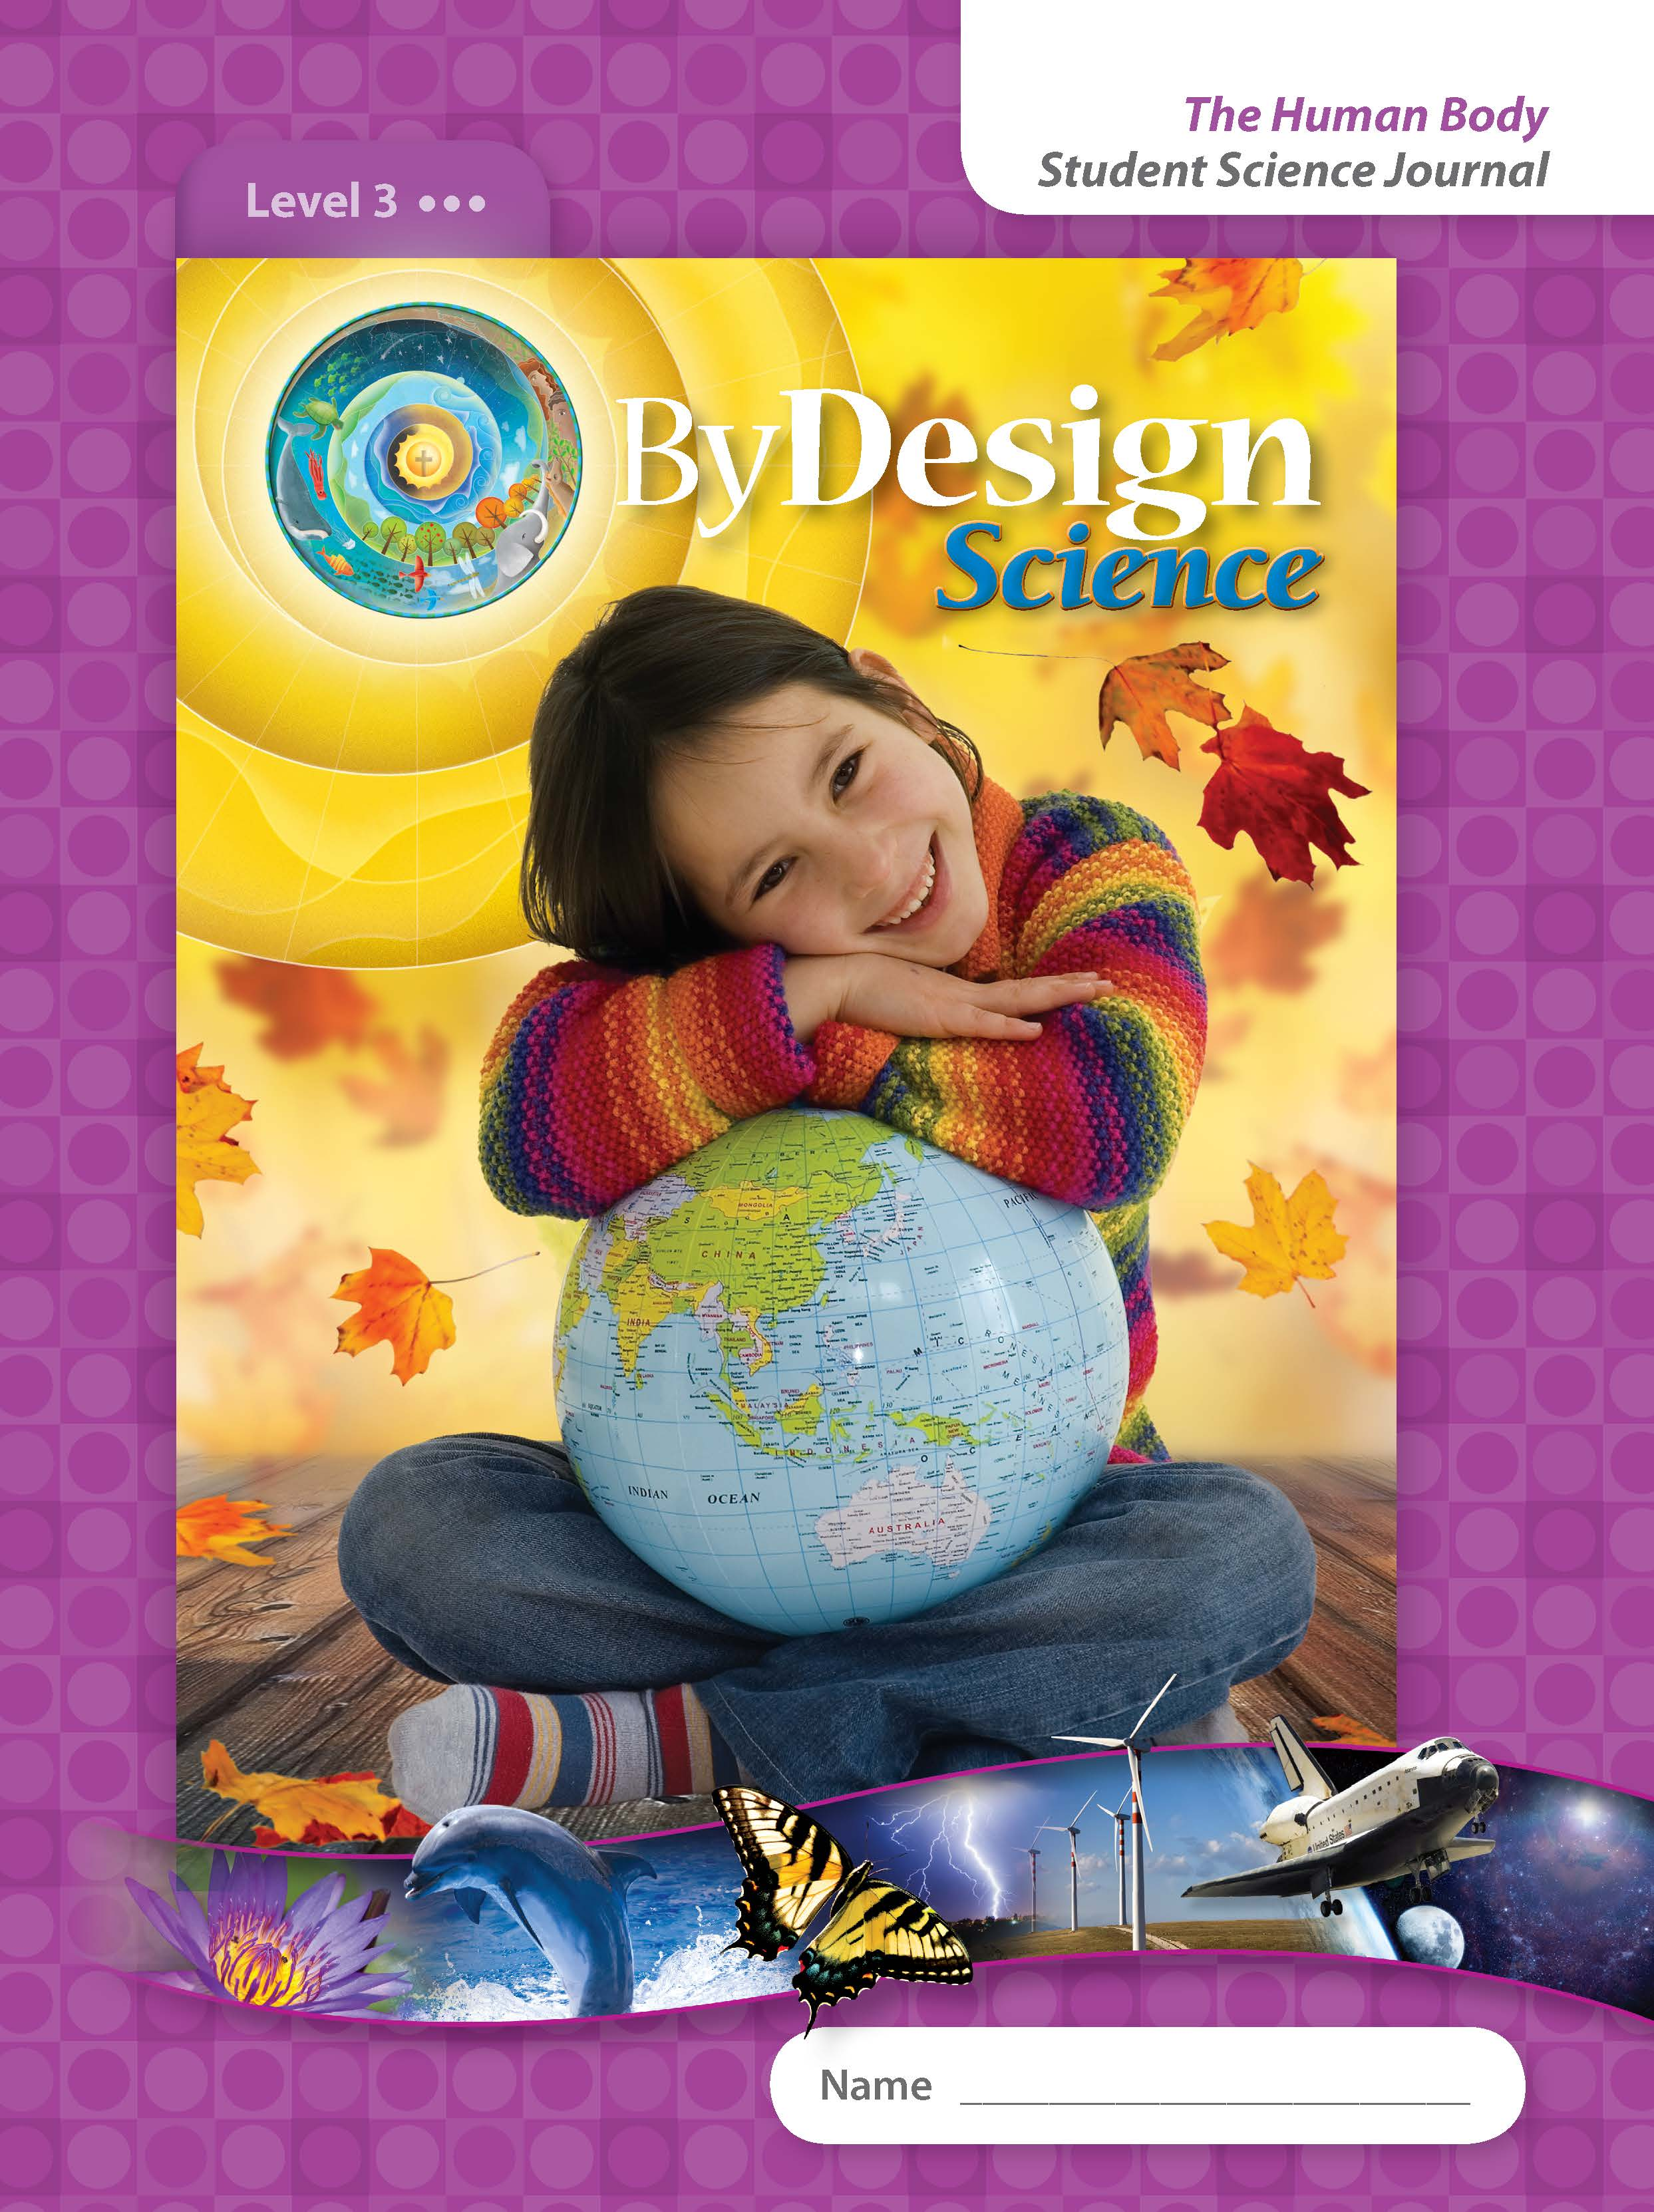 By Design Grade 3 Student Science Journal 1 Year License